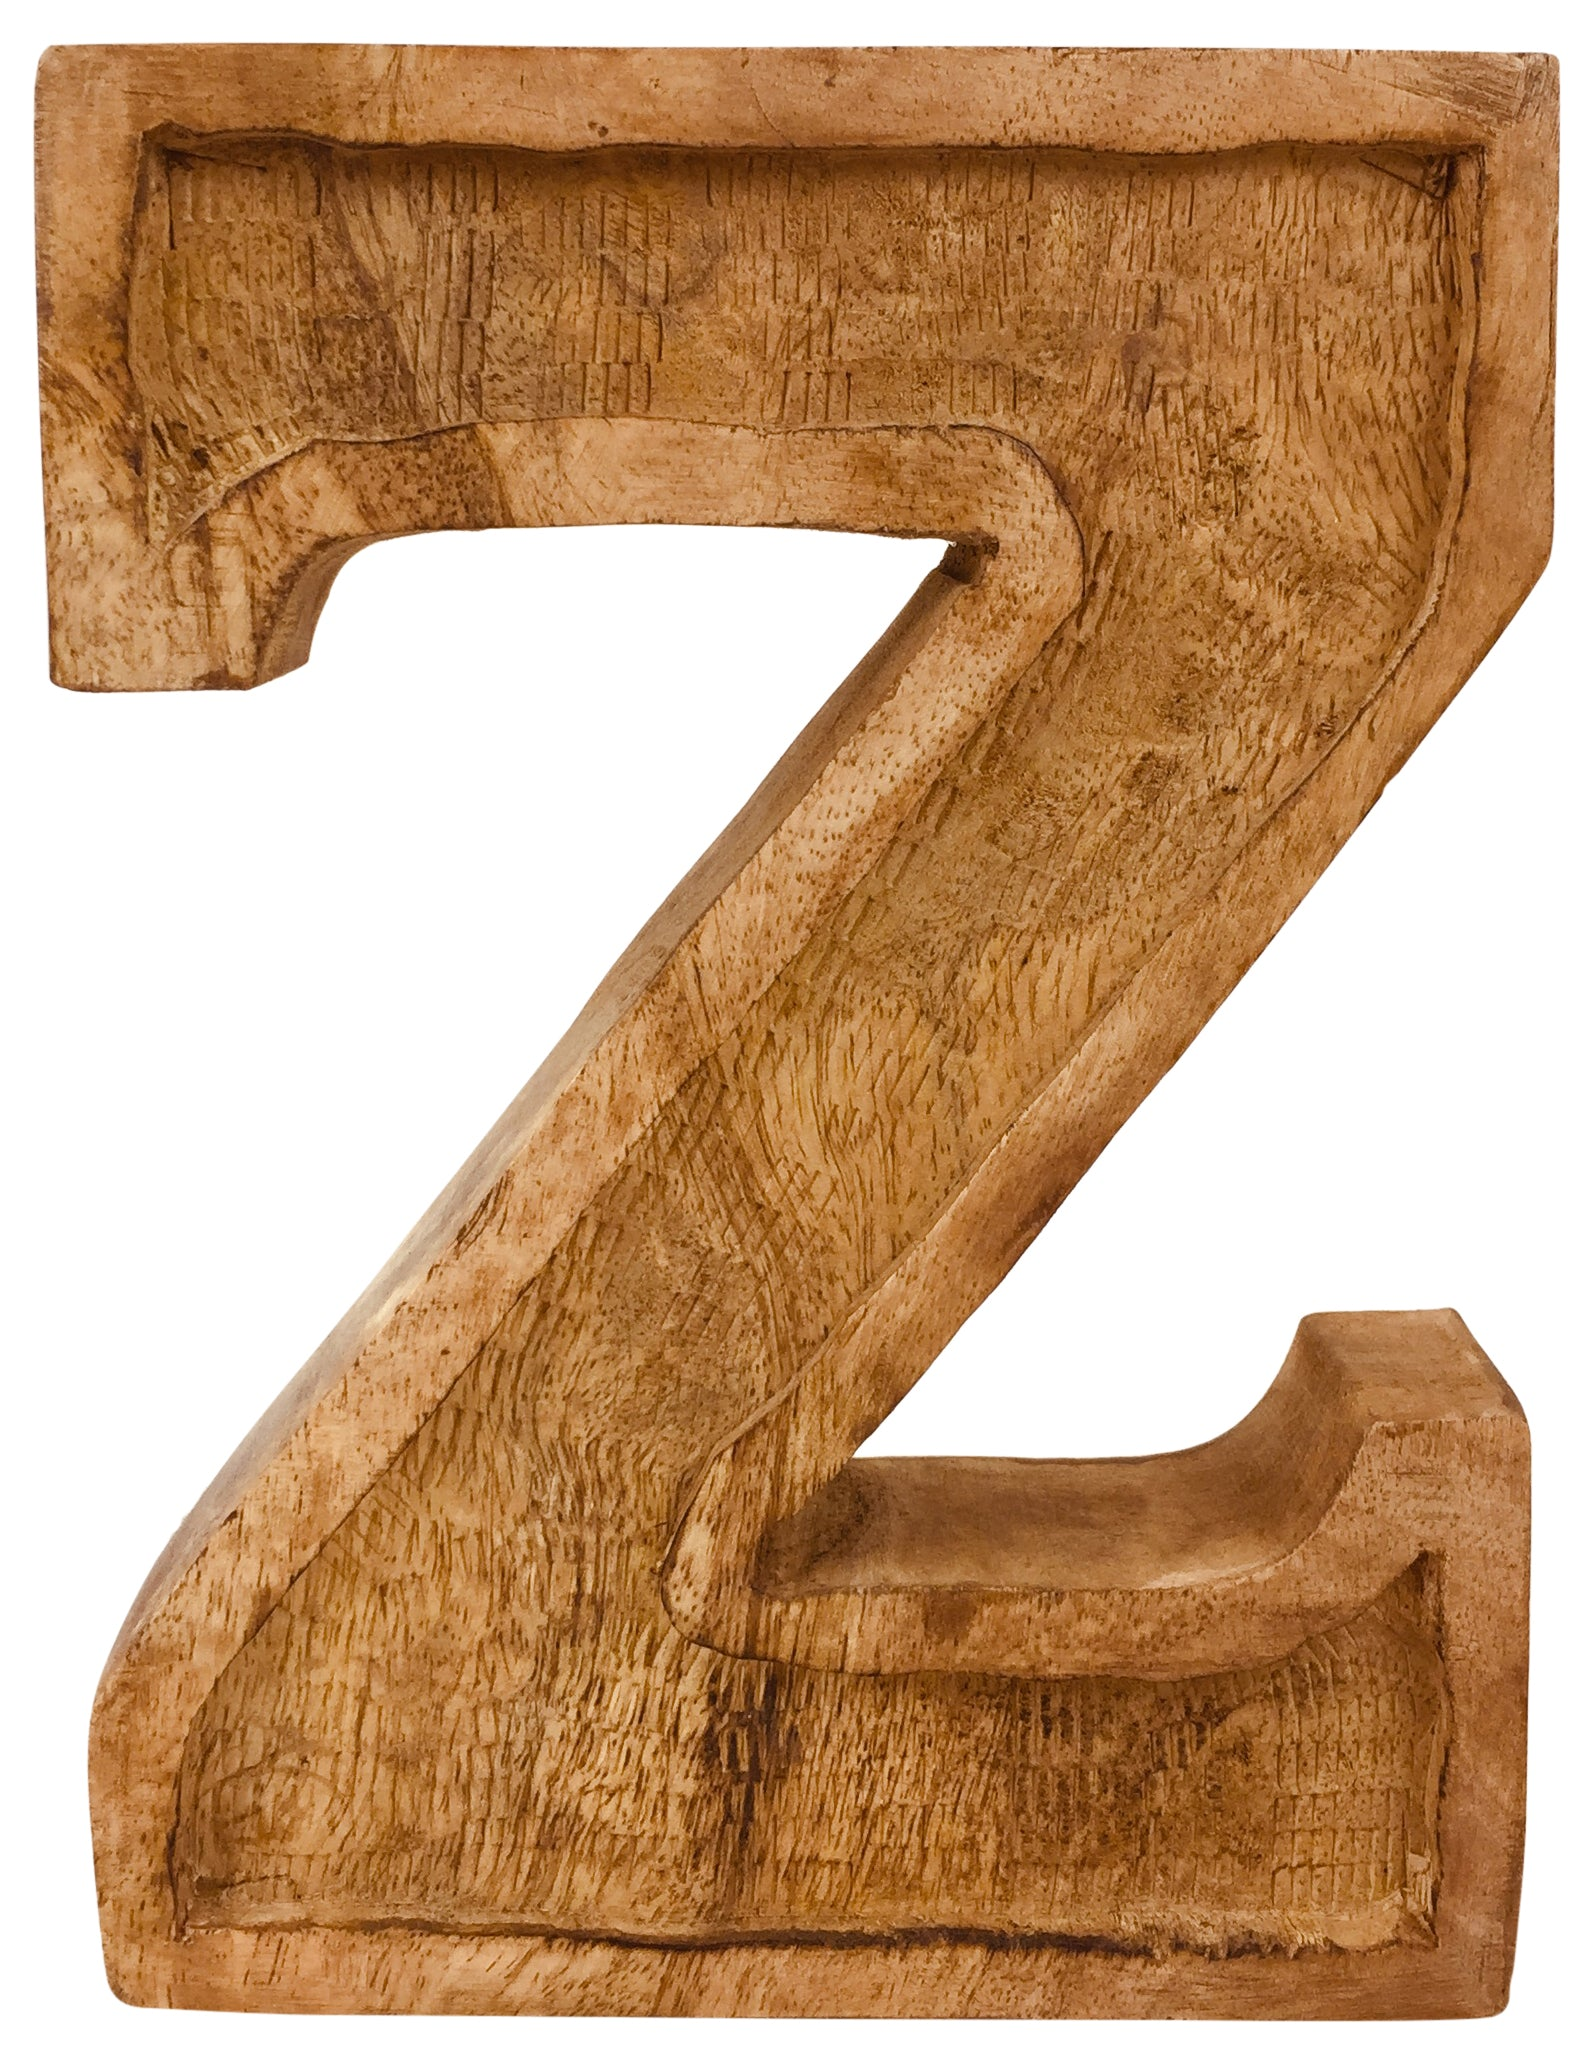 Hand Carved Wooden Embossed Letter Z, Home & Garden by Low Cost Gifts